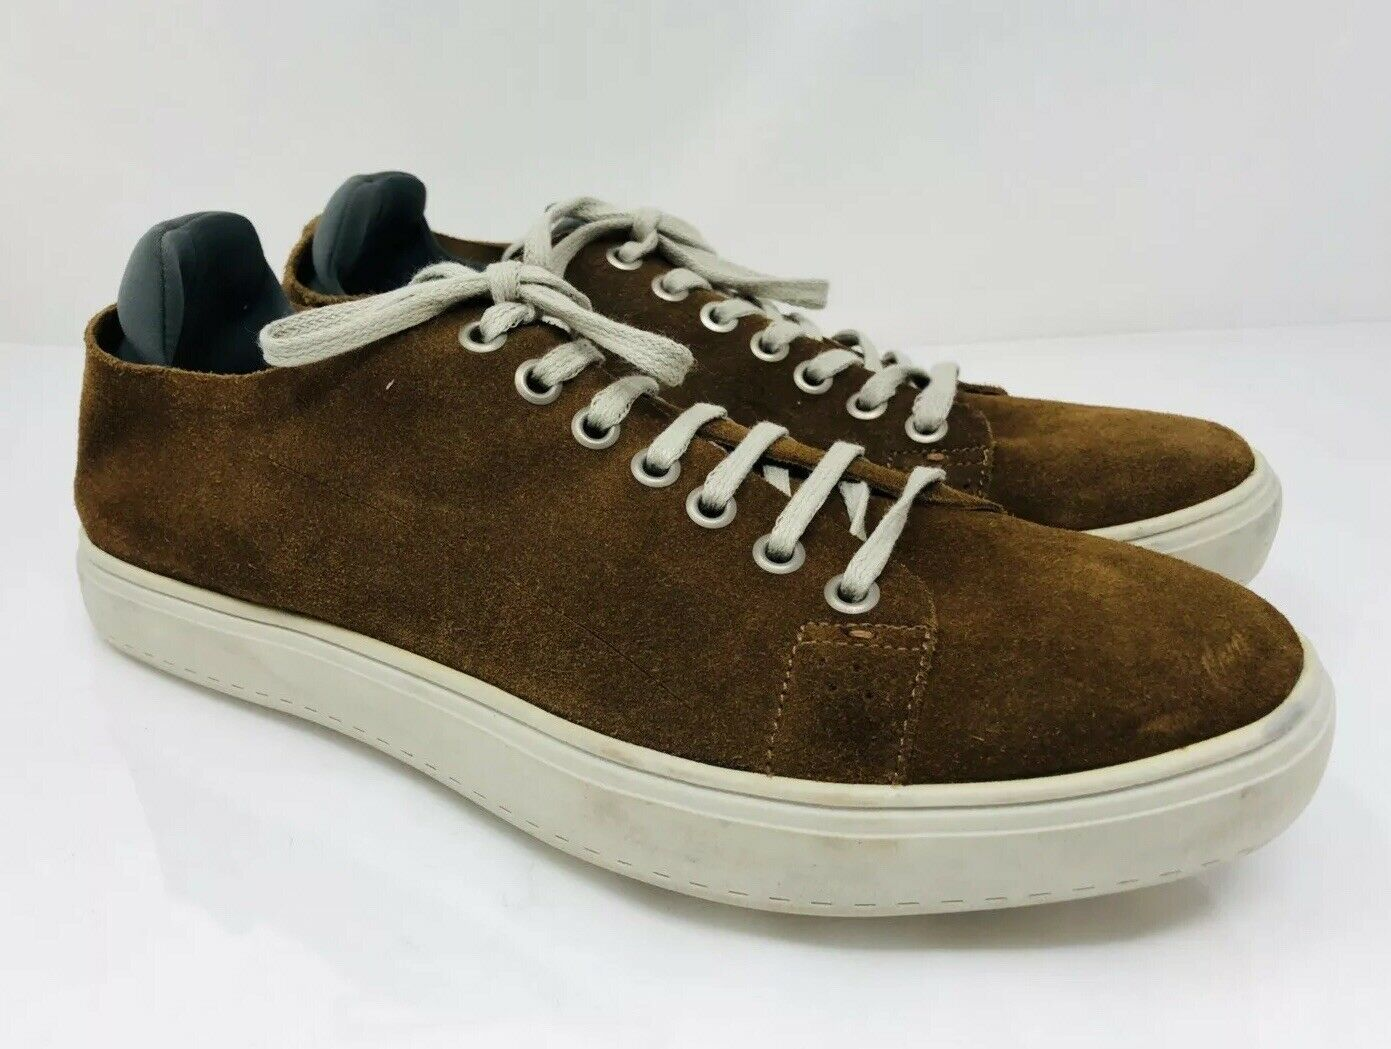 Donald J Pliner Men's Pierce Suede Sneaker Size 8.5M Brown, MSRP